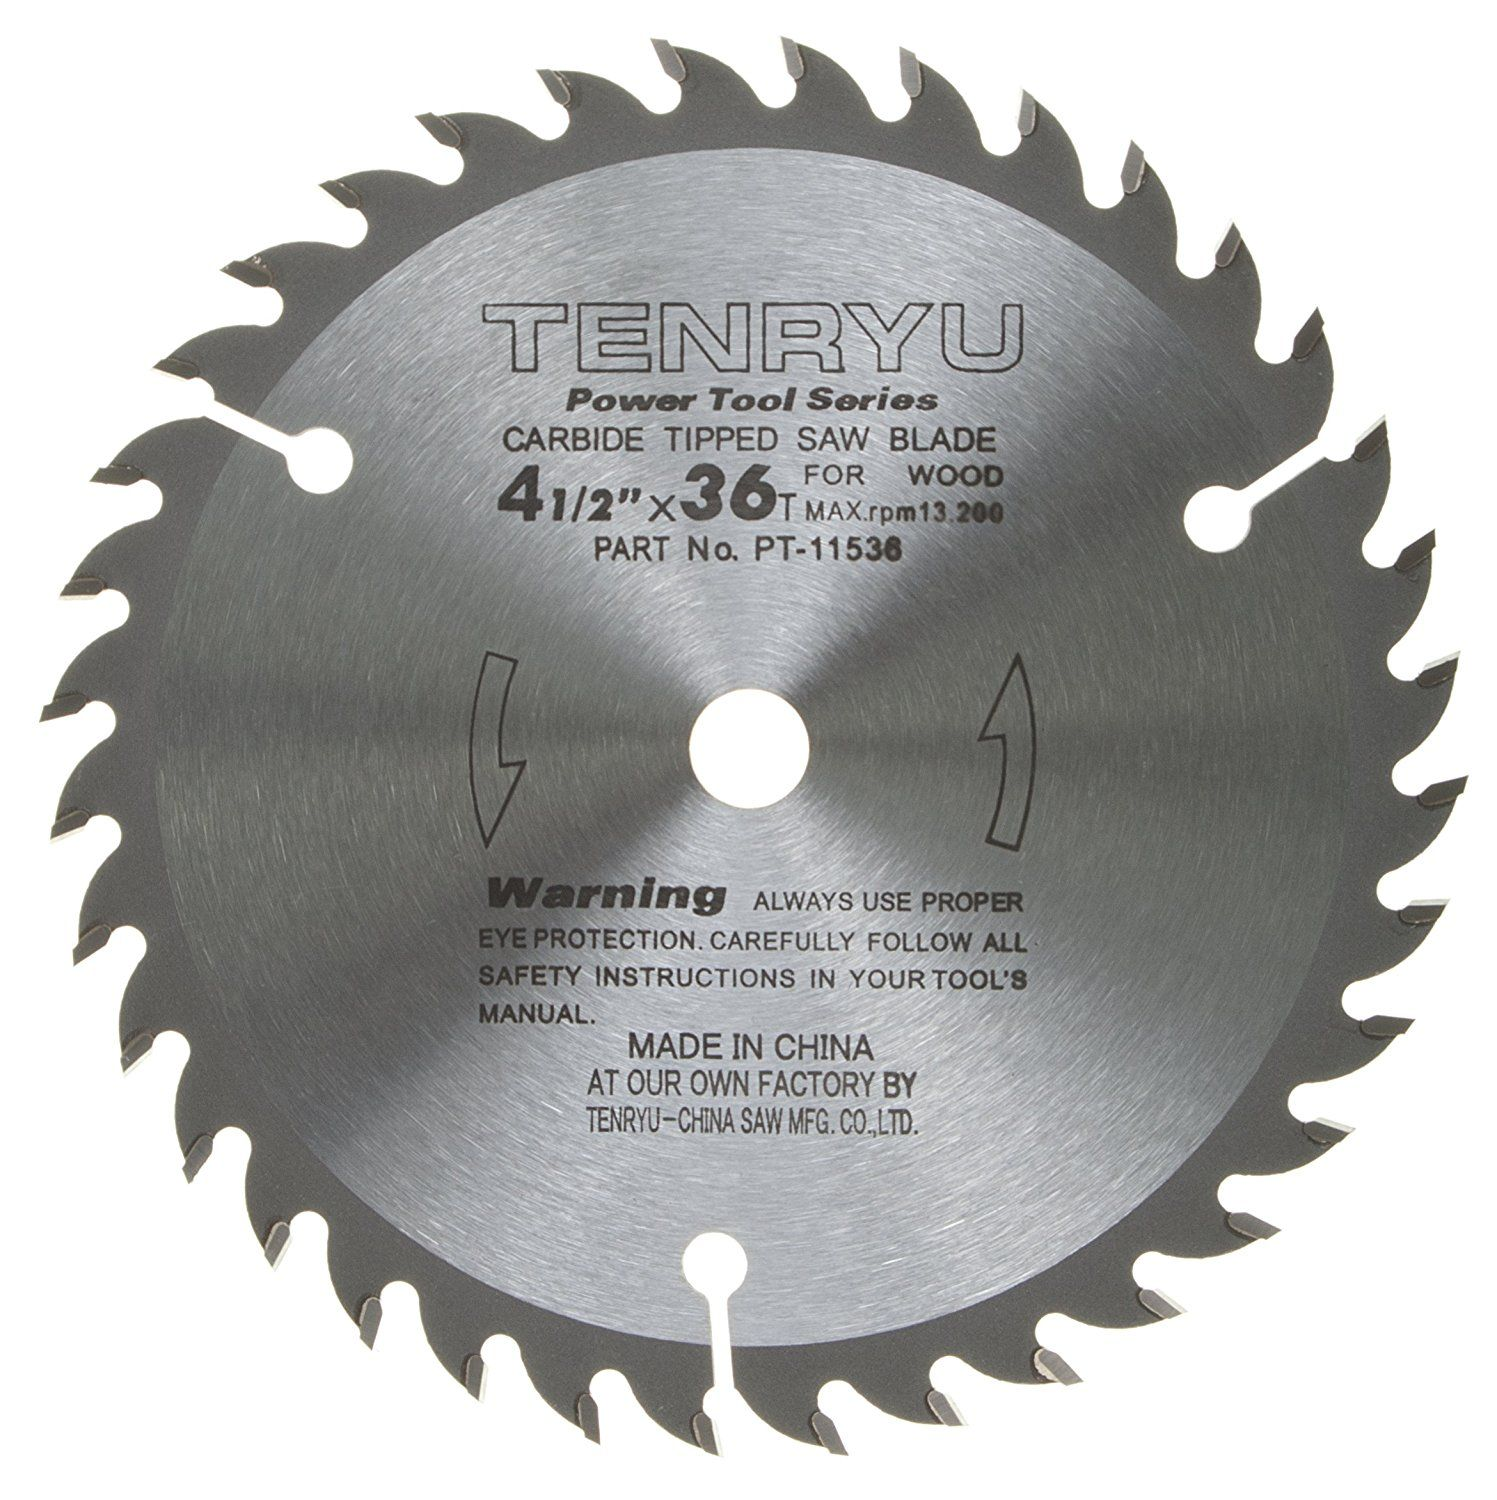 Tenryu Pt 11536 4 1 2 Carbide Tipped Saw Blade 36 Tooth Ataf Grind 3 8 Arbor 0 063 Kerf For More Information With Images Saw Blade Circular Saw Blades Blade